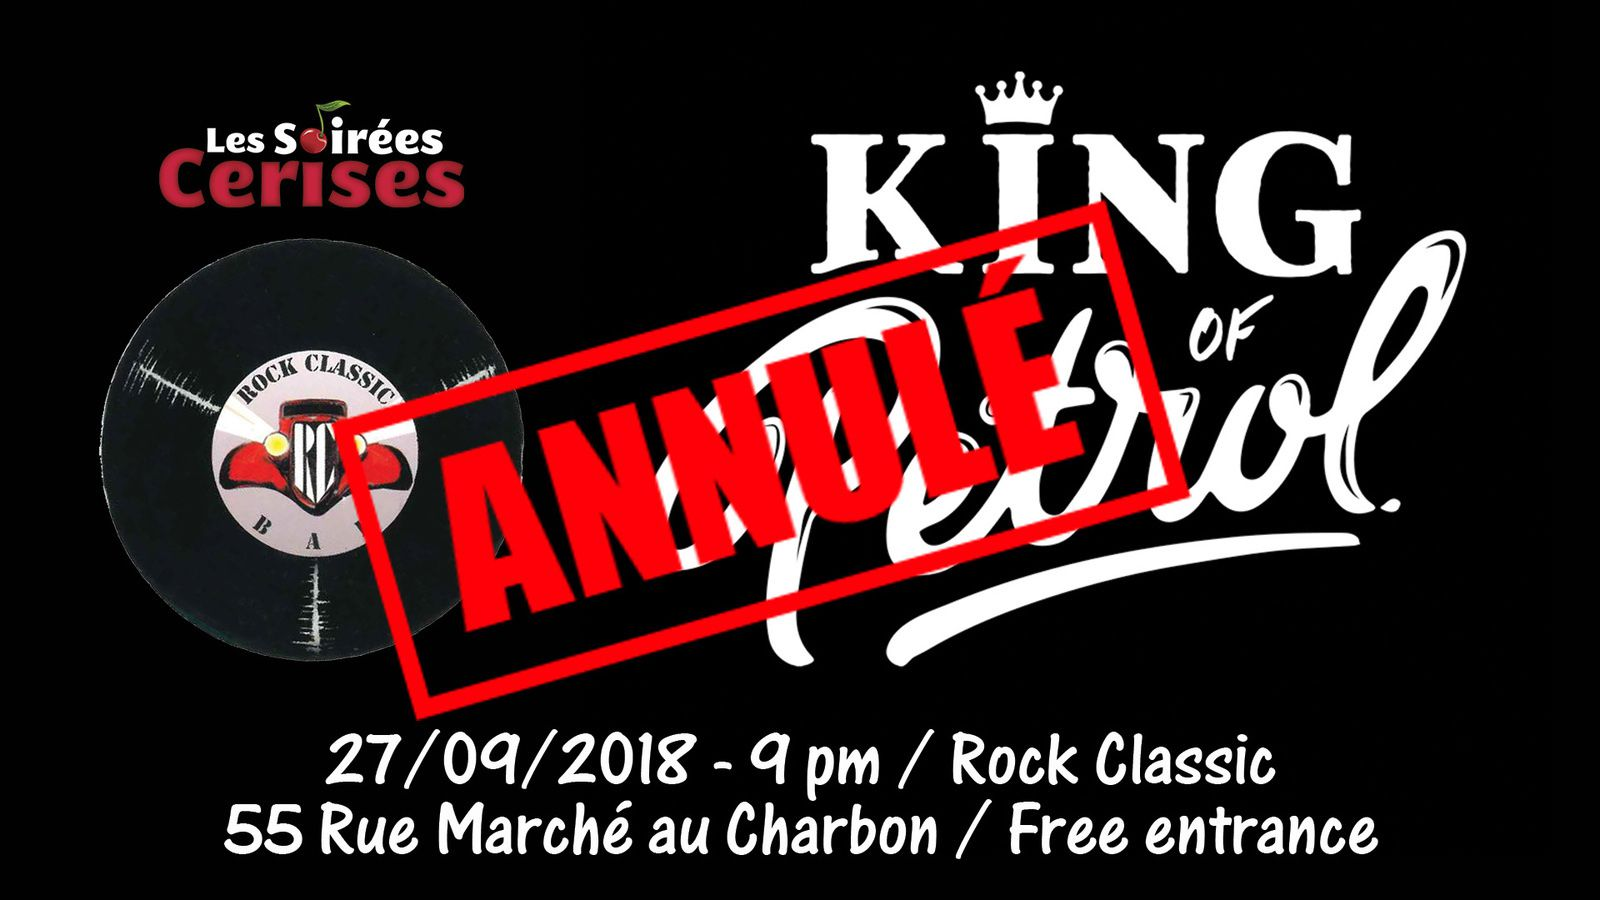 ▶ King of Petrol @ Rock Classic - 27/09/2018 - annulé !